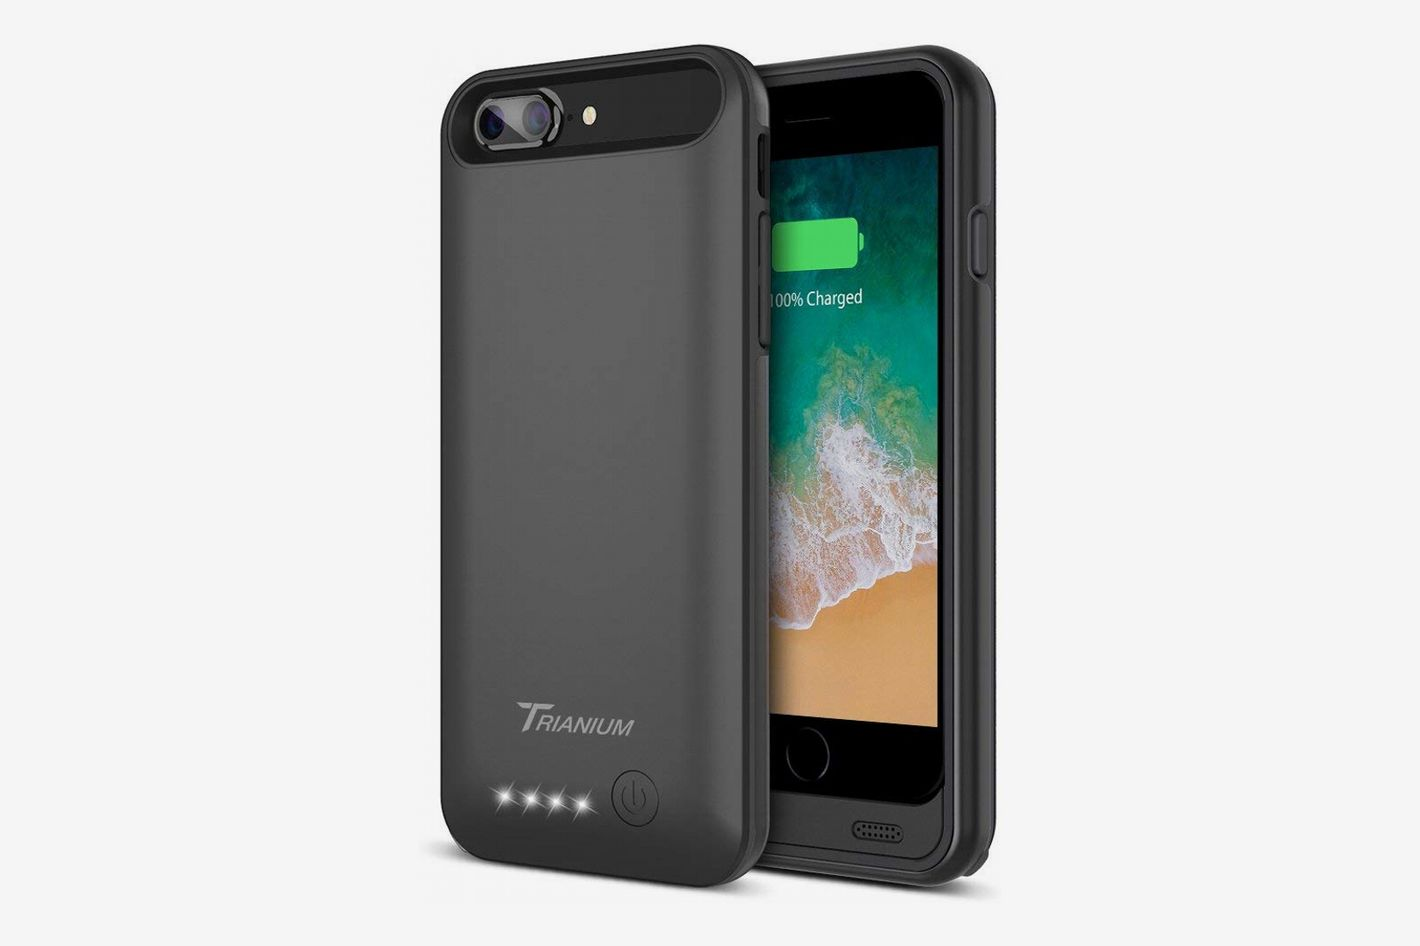 Trianium iPhone Battery Case